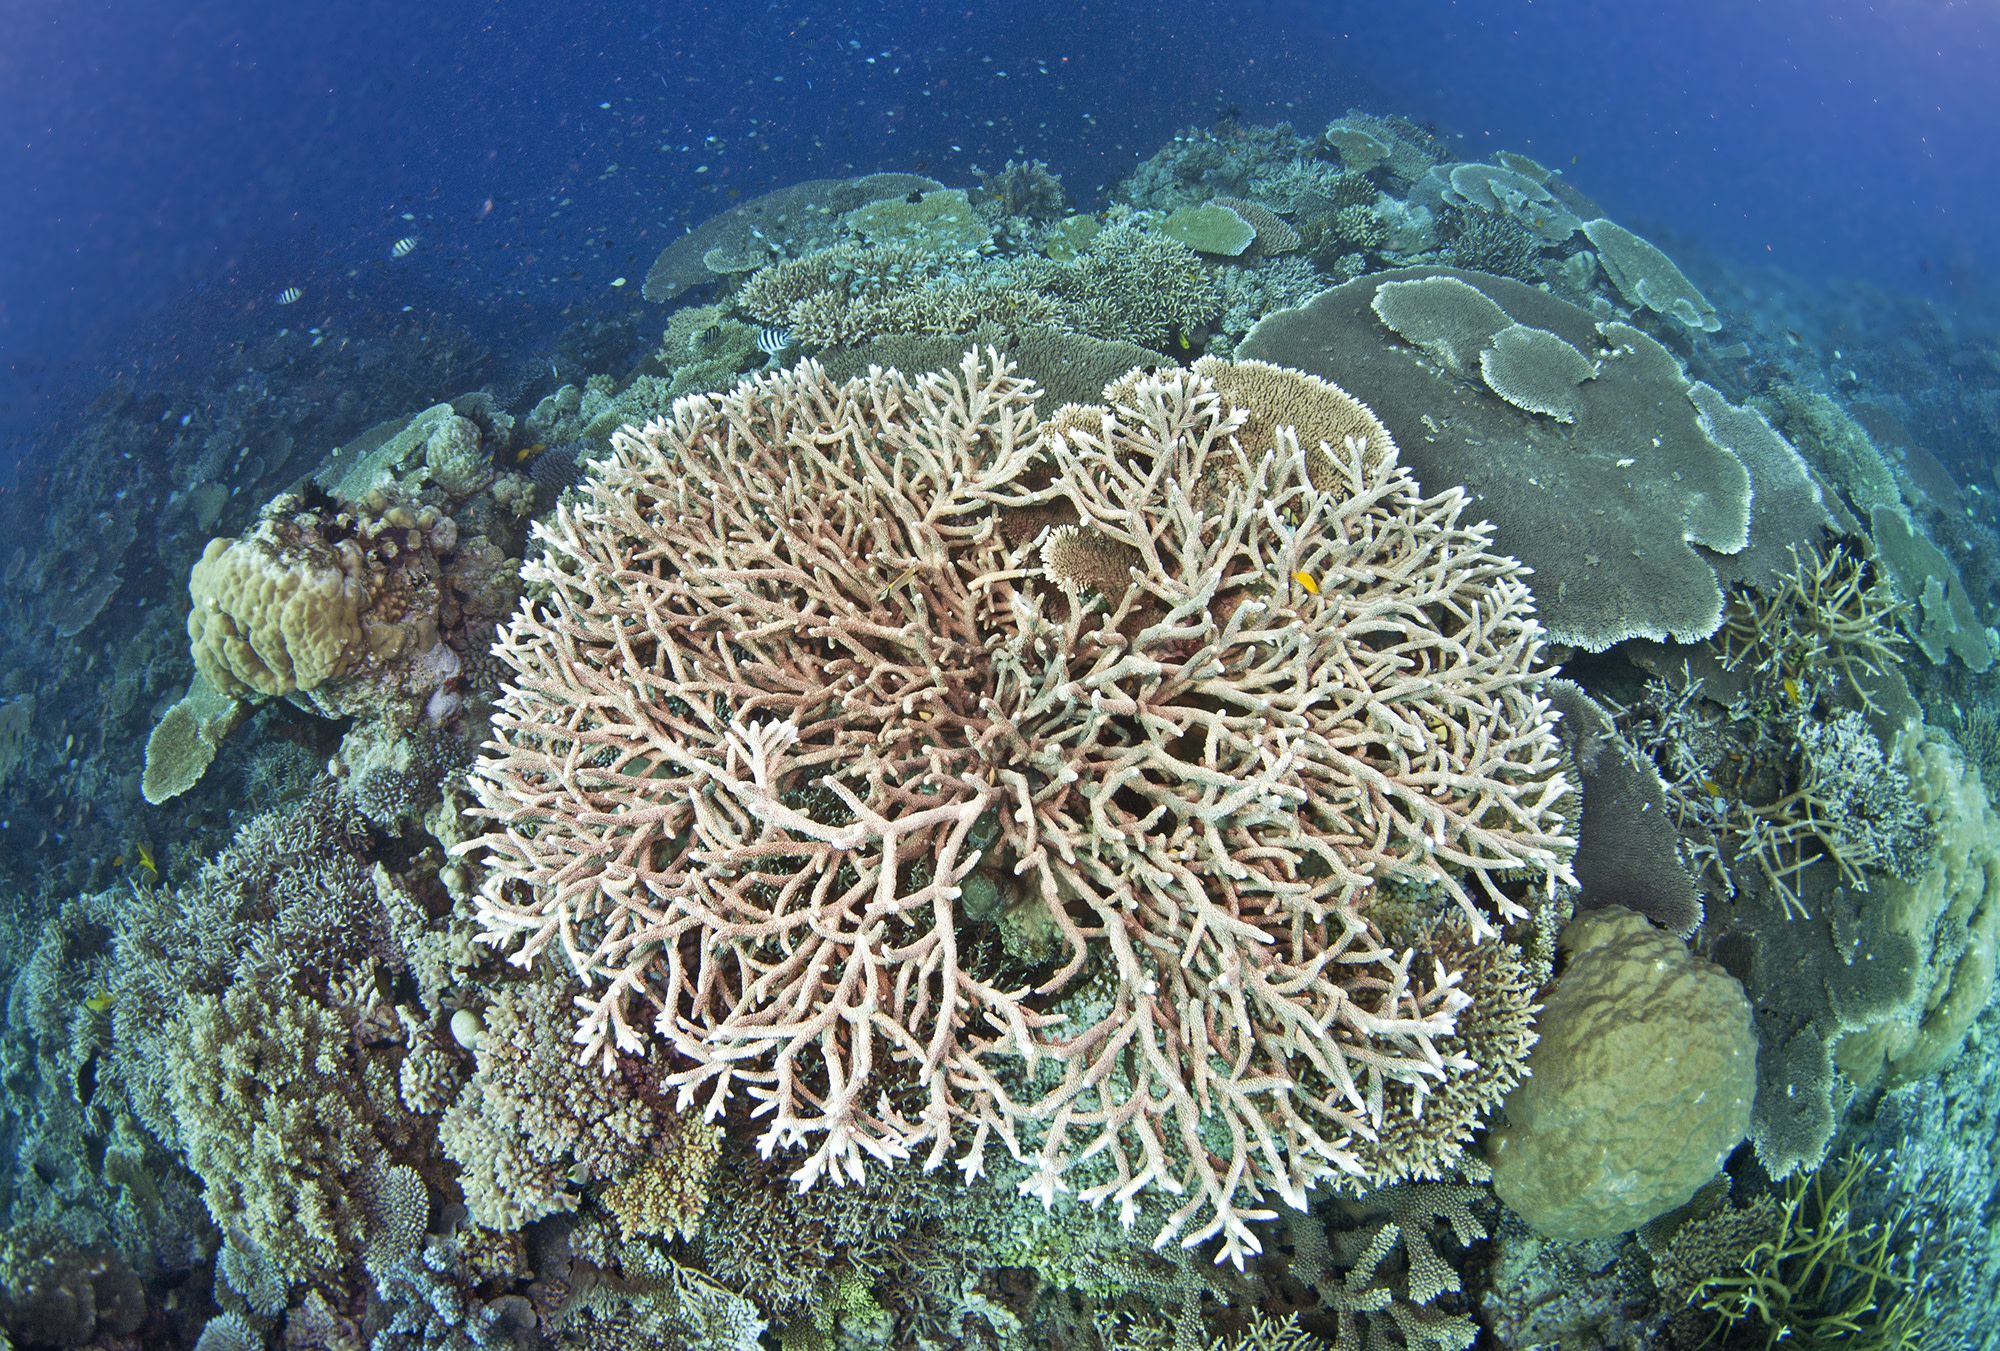 An open letter to Aussie Citizens from the Great Barrier Reef